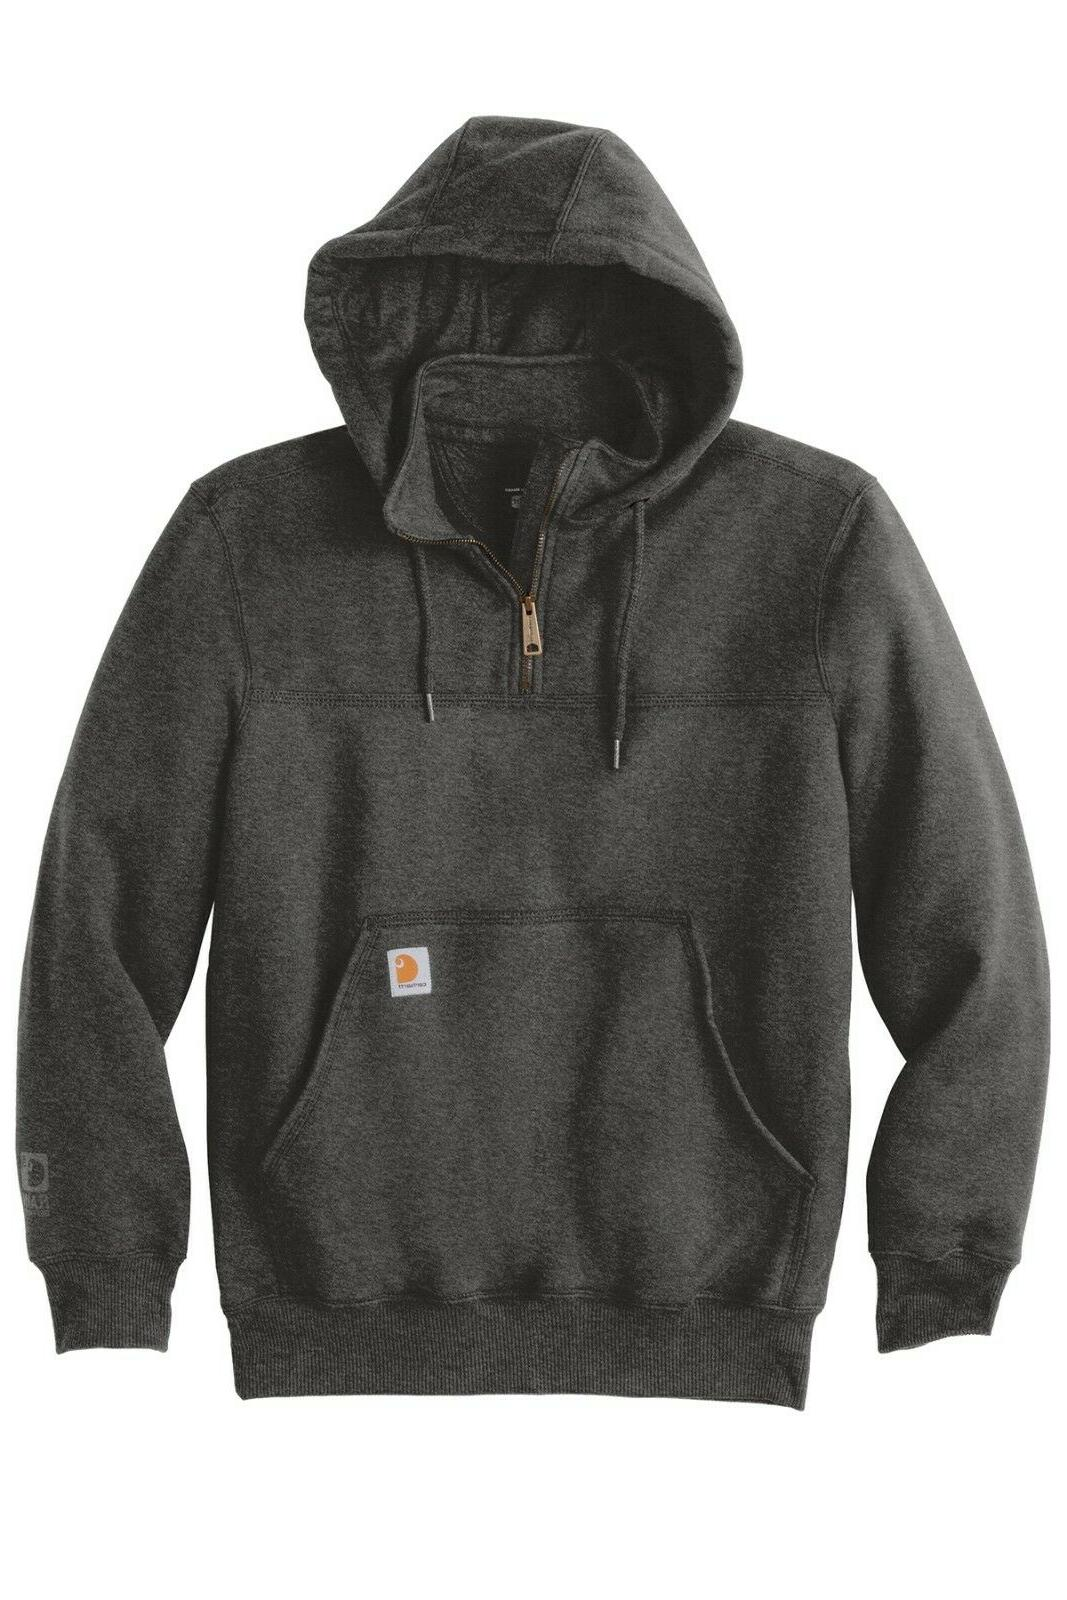 Carhartt Hooded Quarter Zip